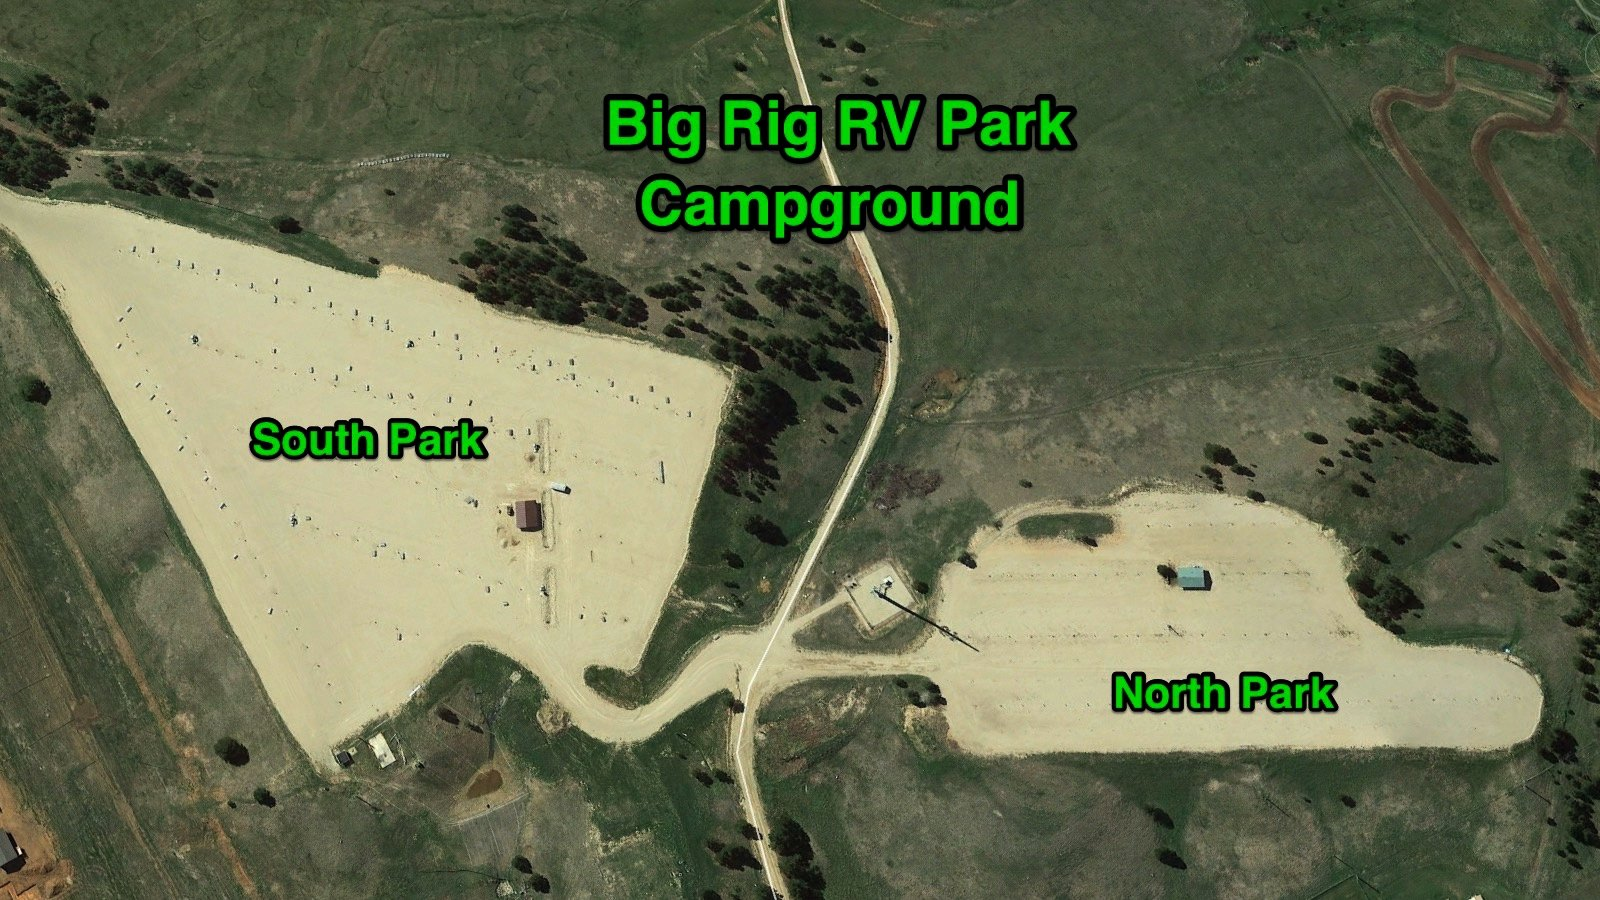 Sturgis RV Parks - Sturgis Campgrounds - Big Rig RV Park Park Map Overview